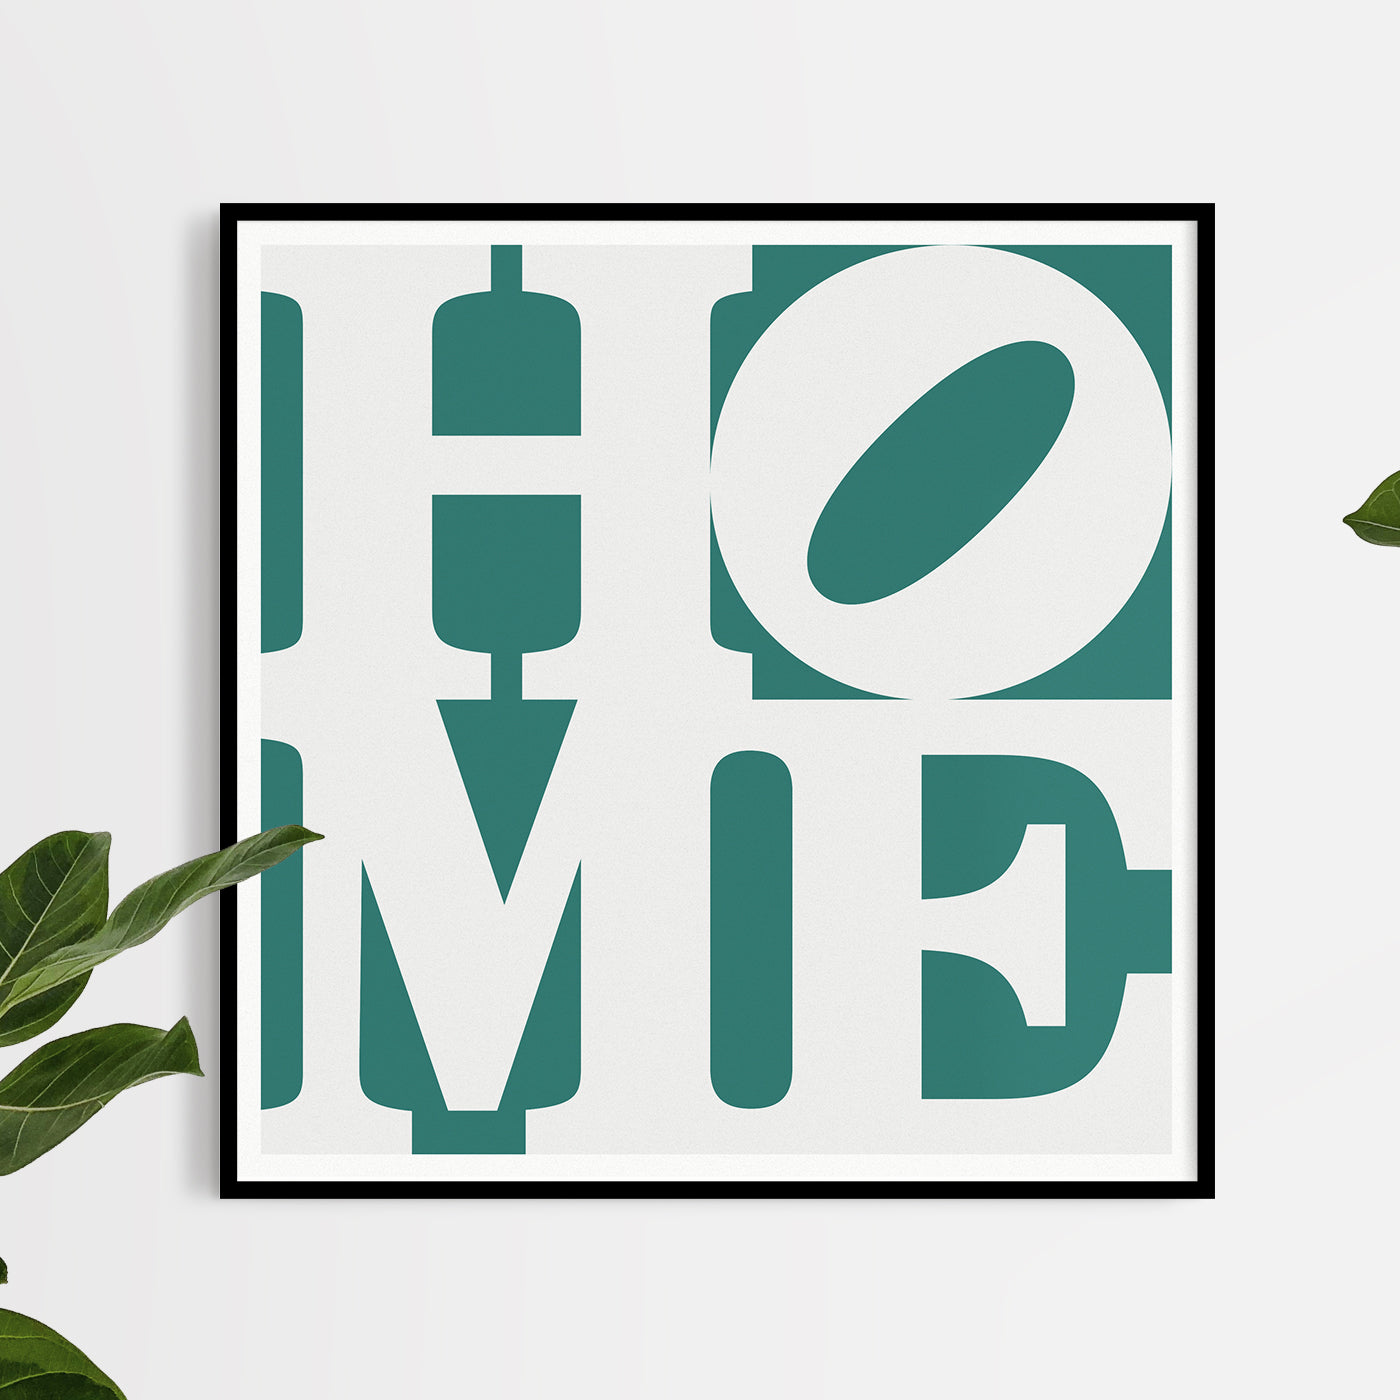 HOME: Heritage No. 32